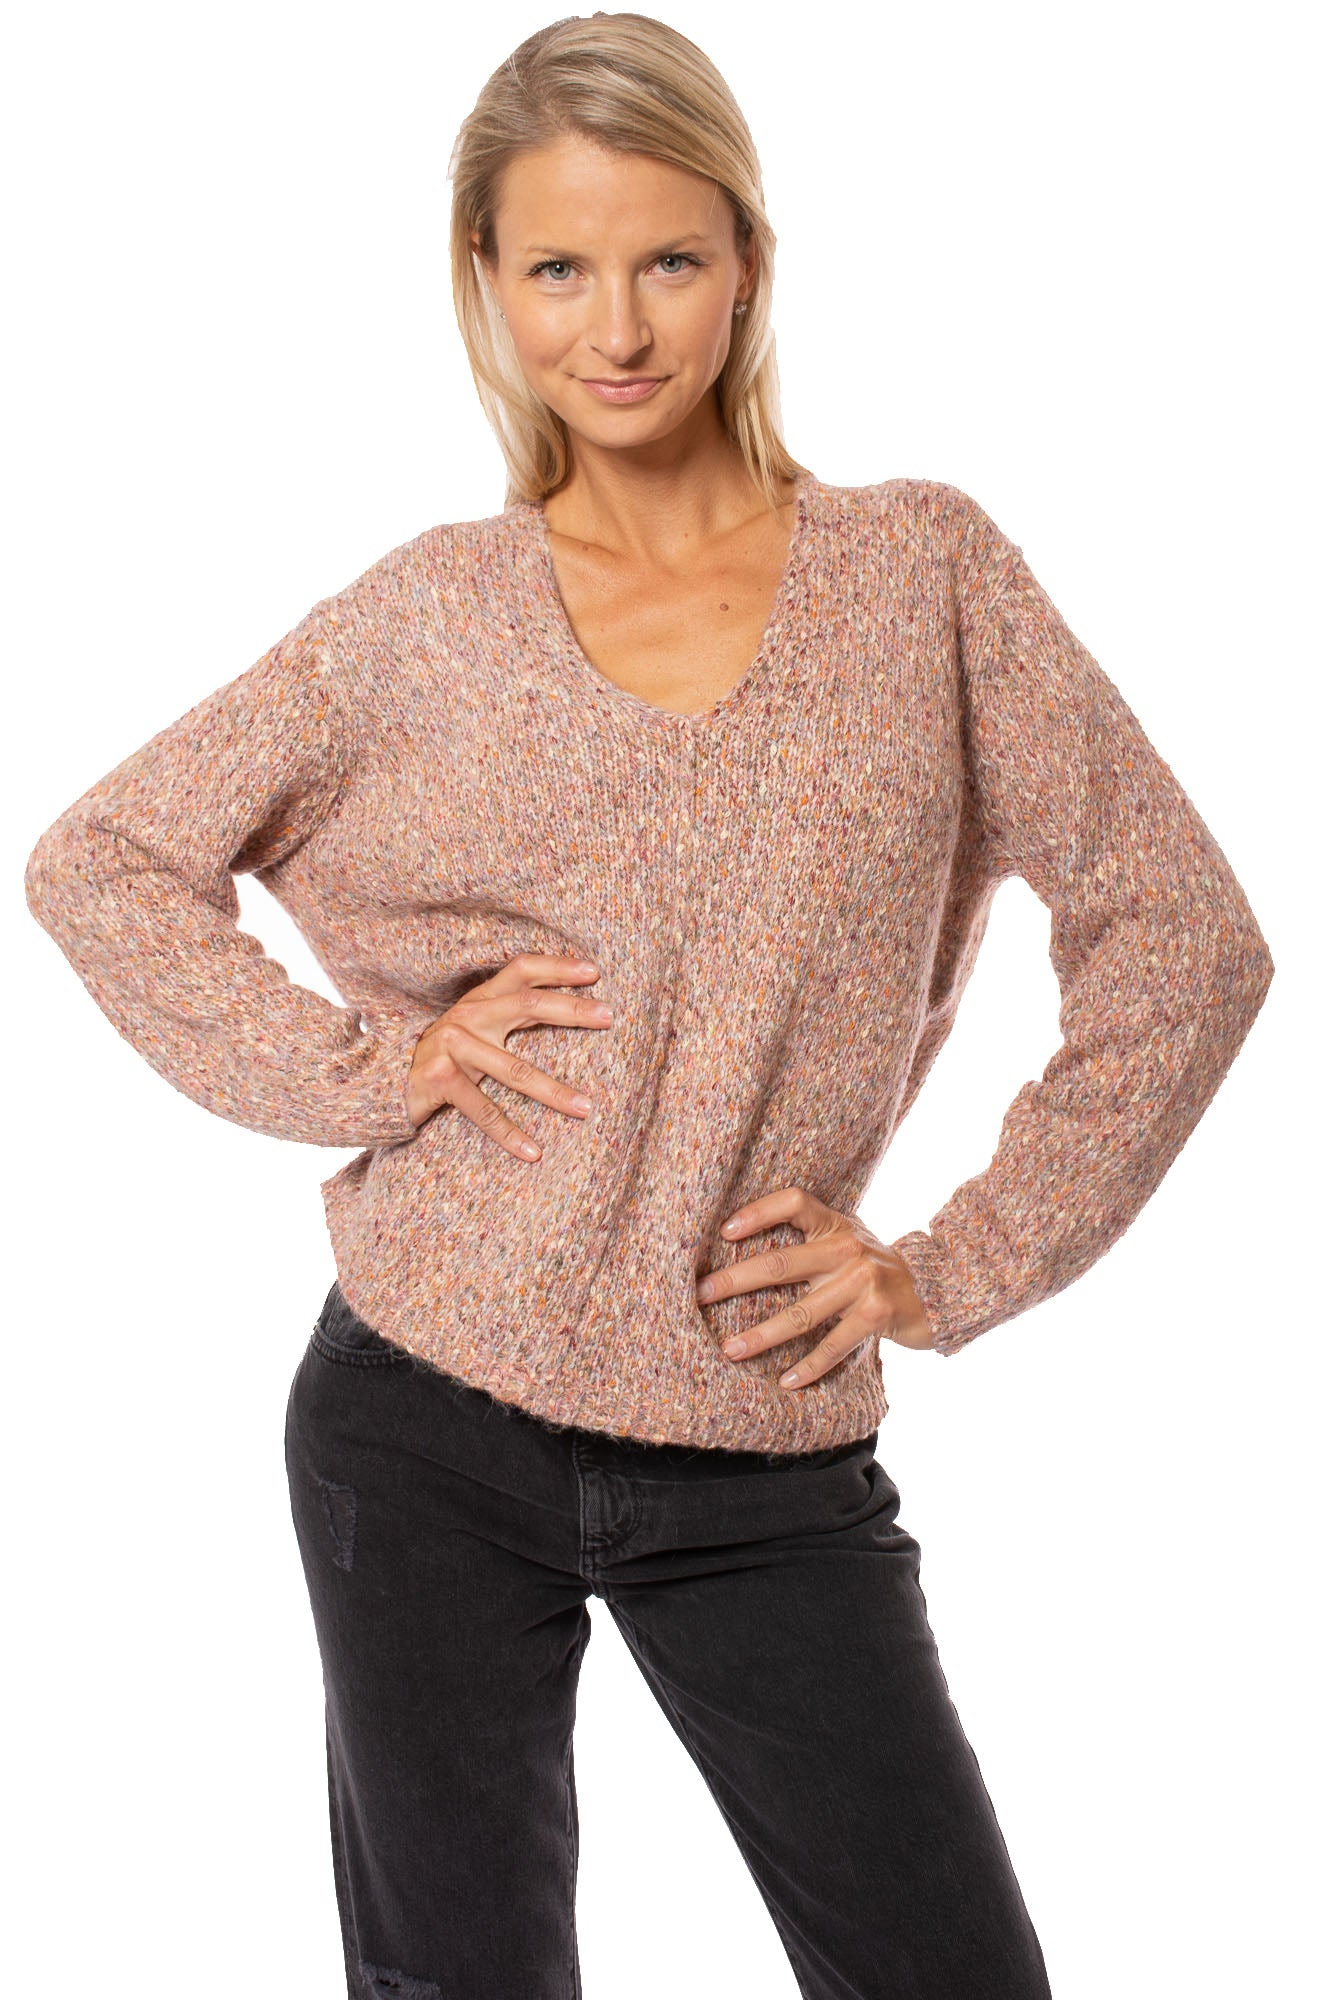 Heartland - Ace Sweater (196593A, Rouge)